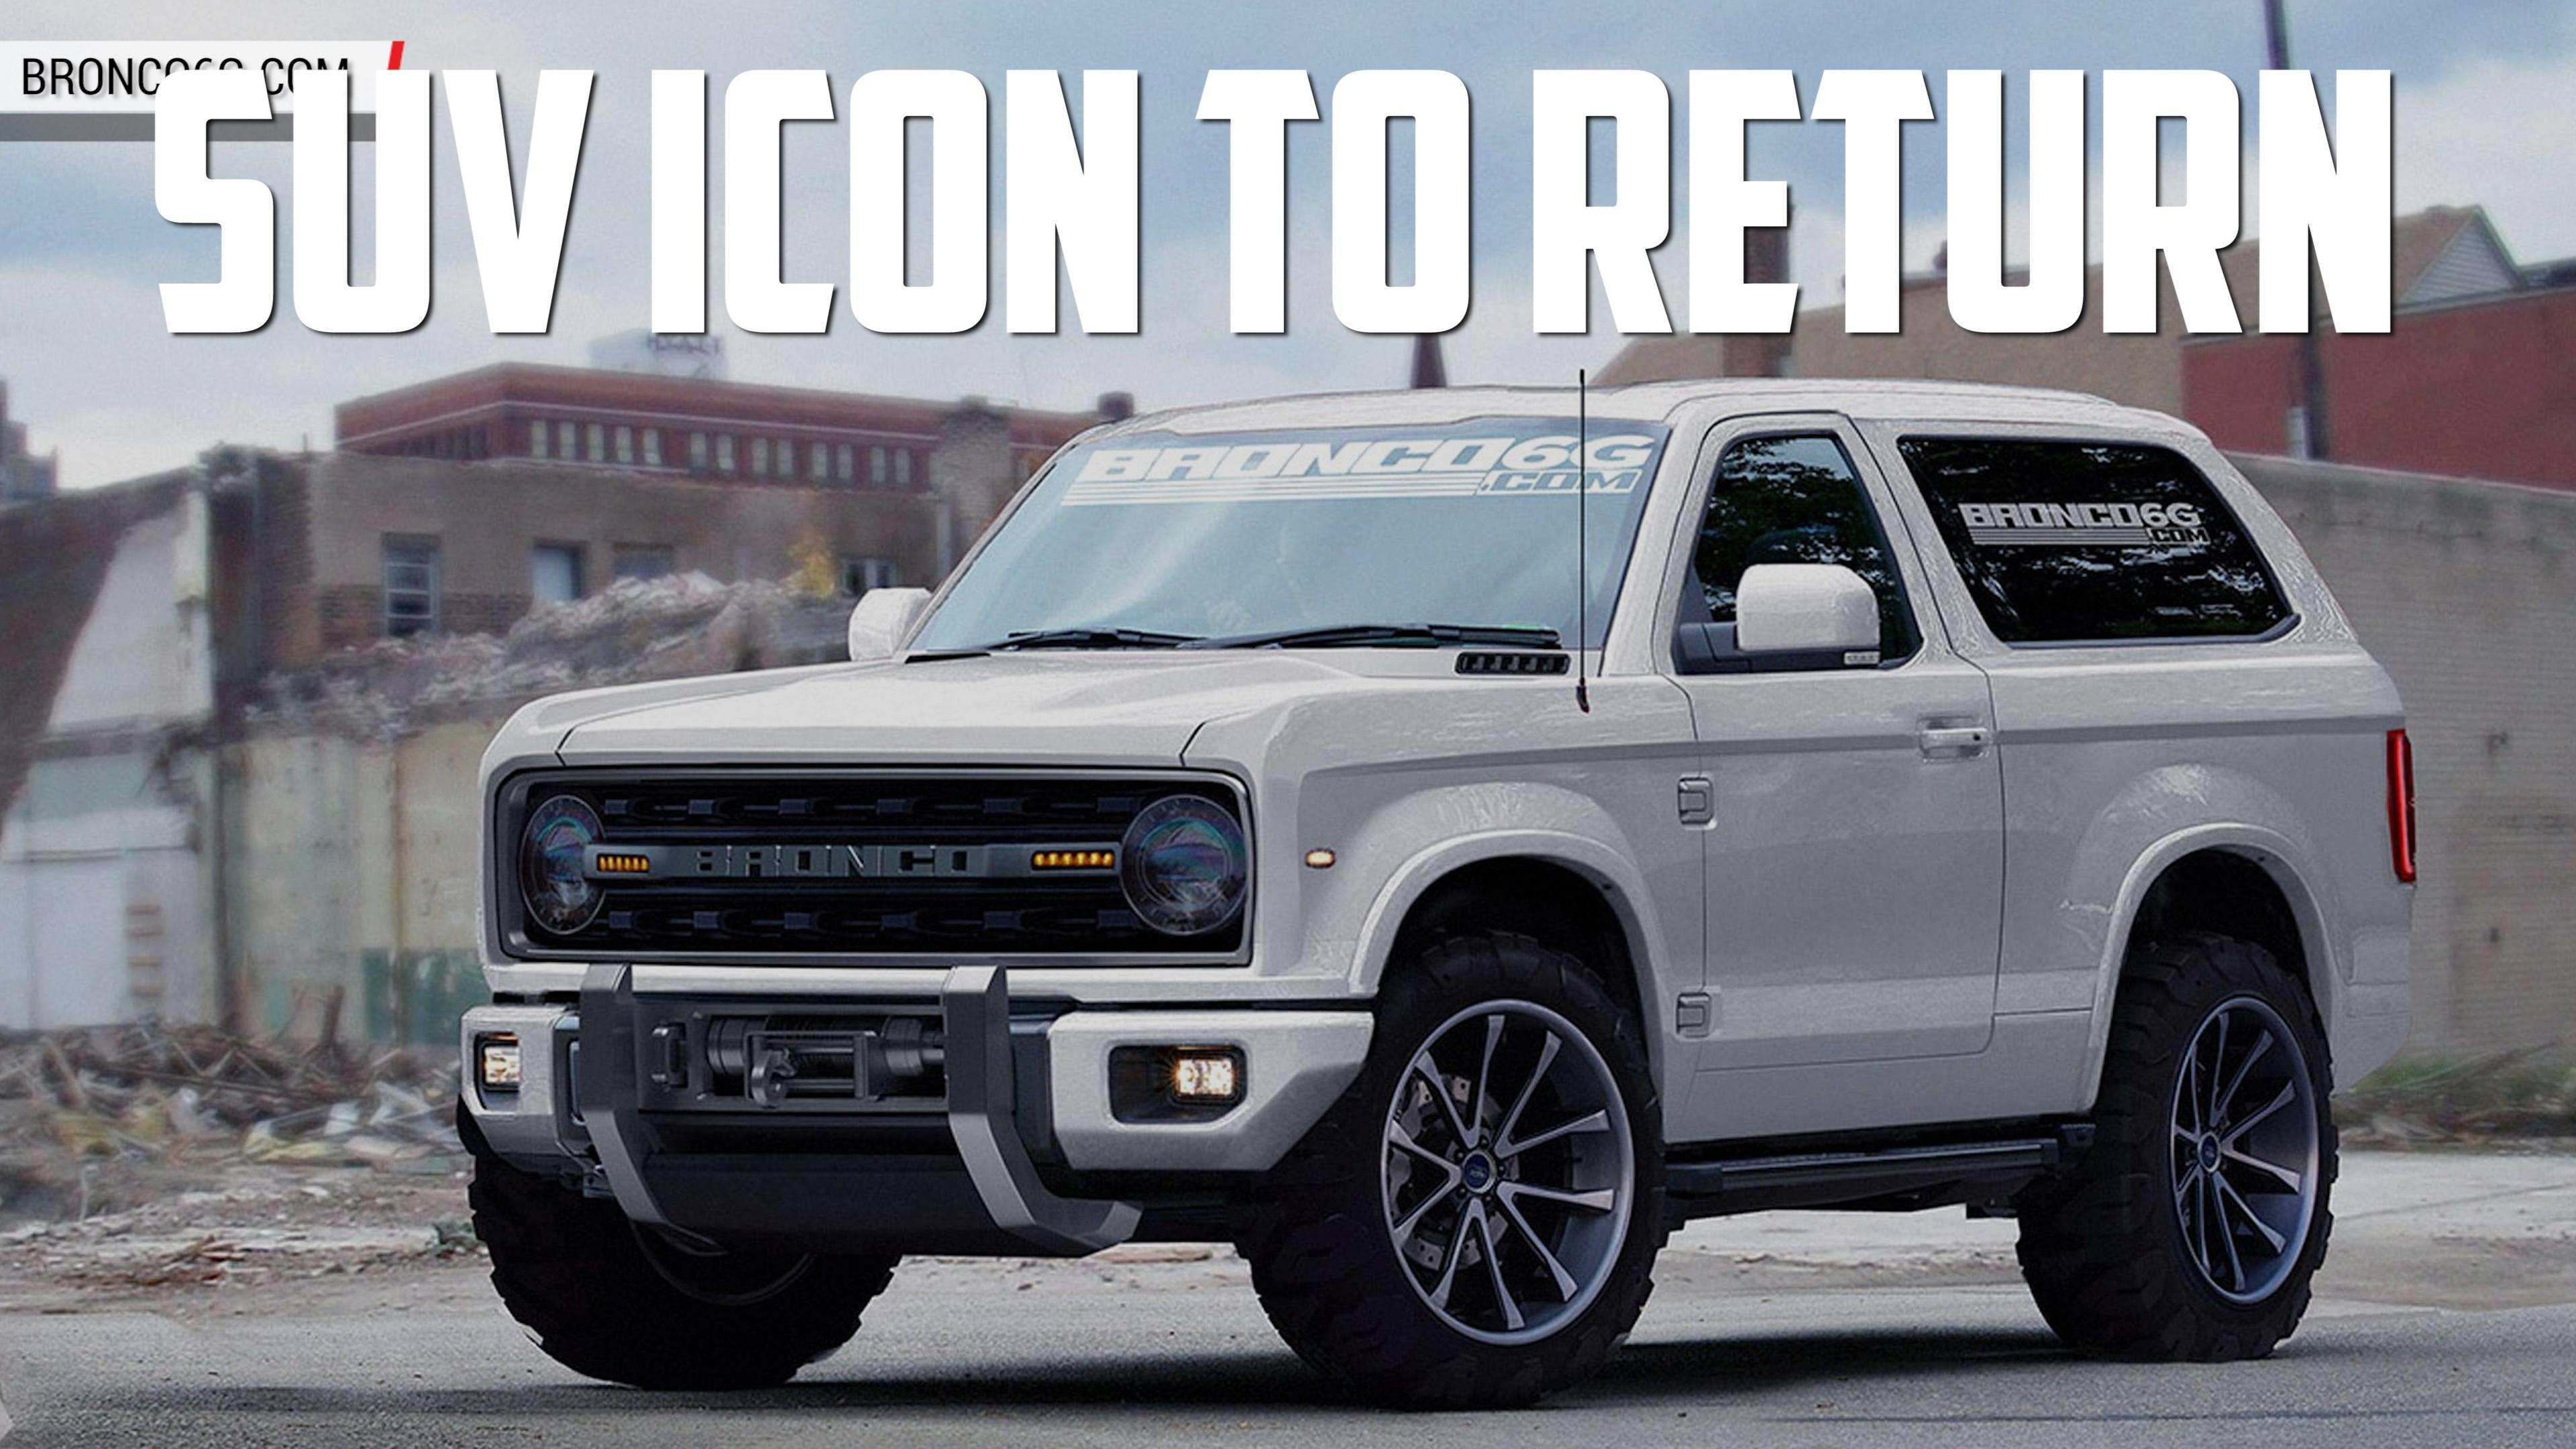 57 All New 2020 Ford Bronco Review Wallpaper for 2020 Ford Bronco Review